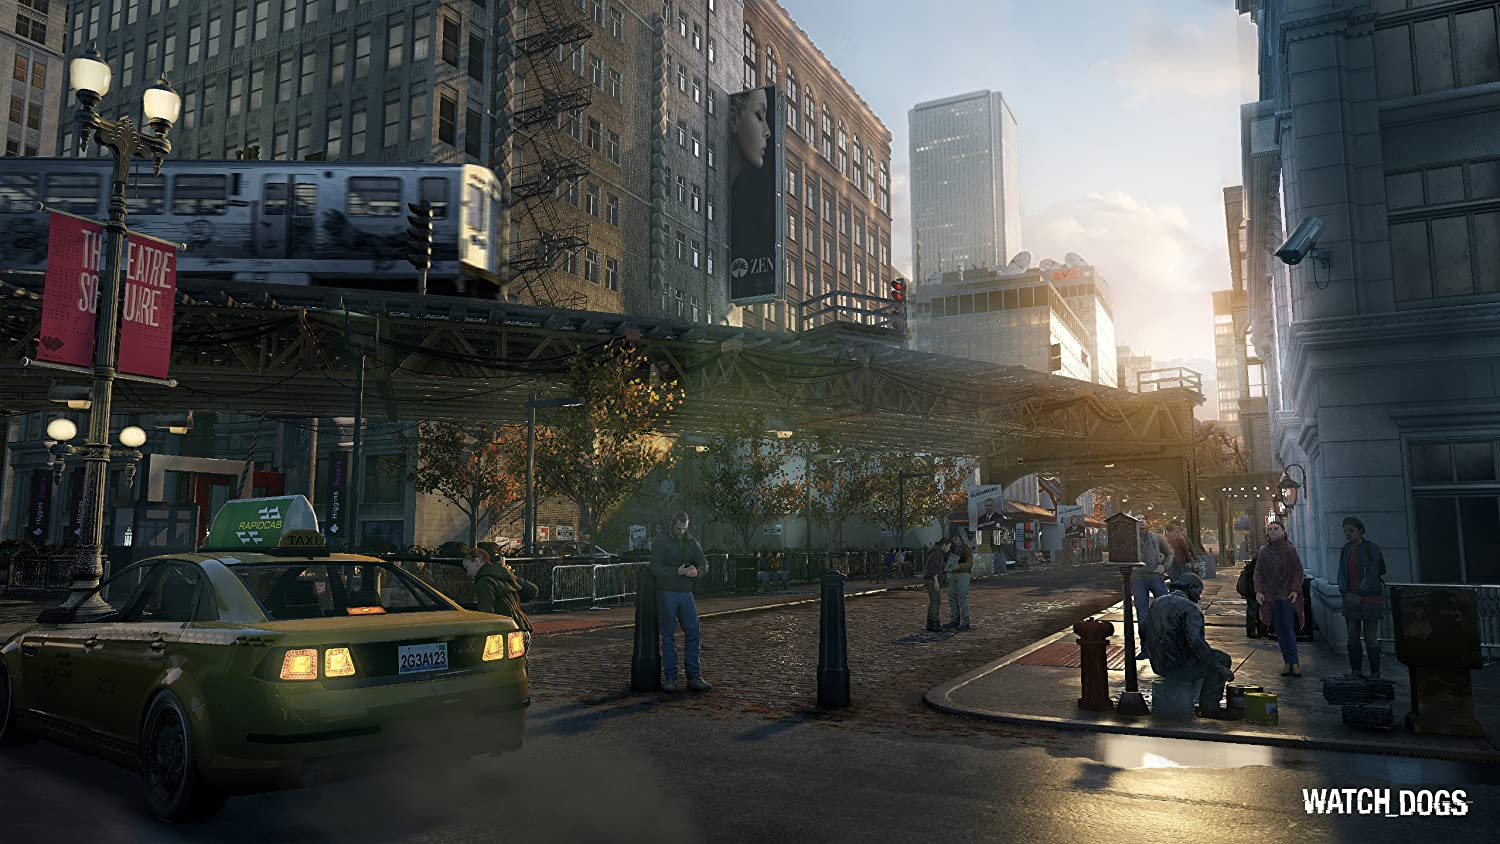 Amazon com: Watch Dogs - PC: Video Games